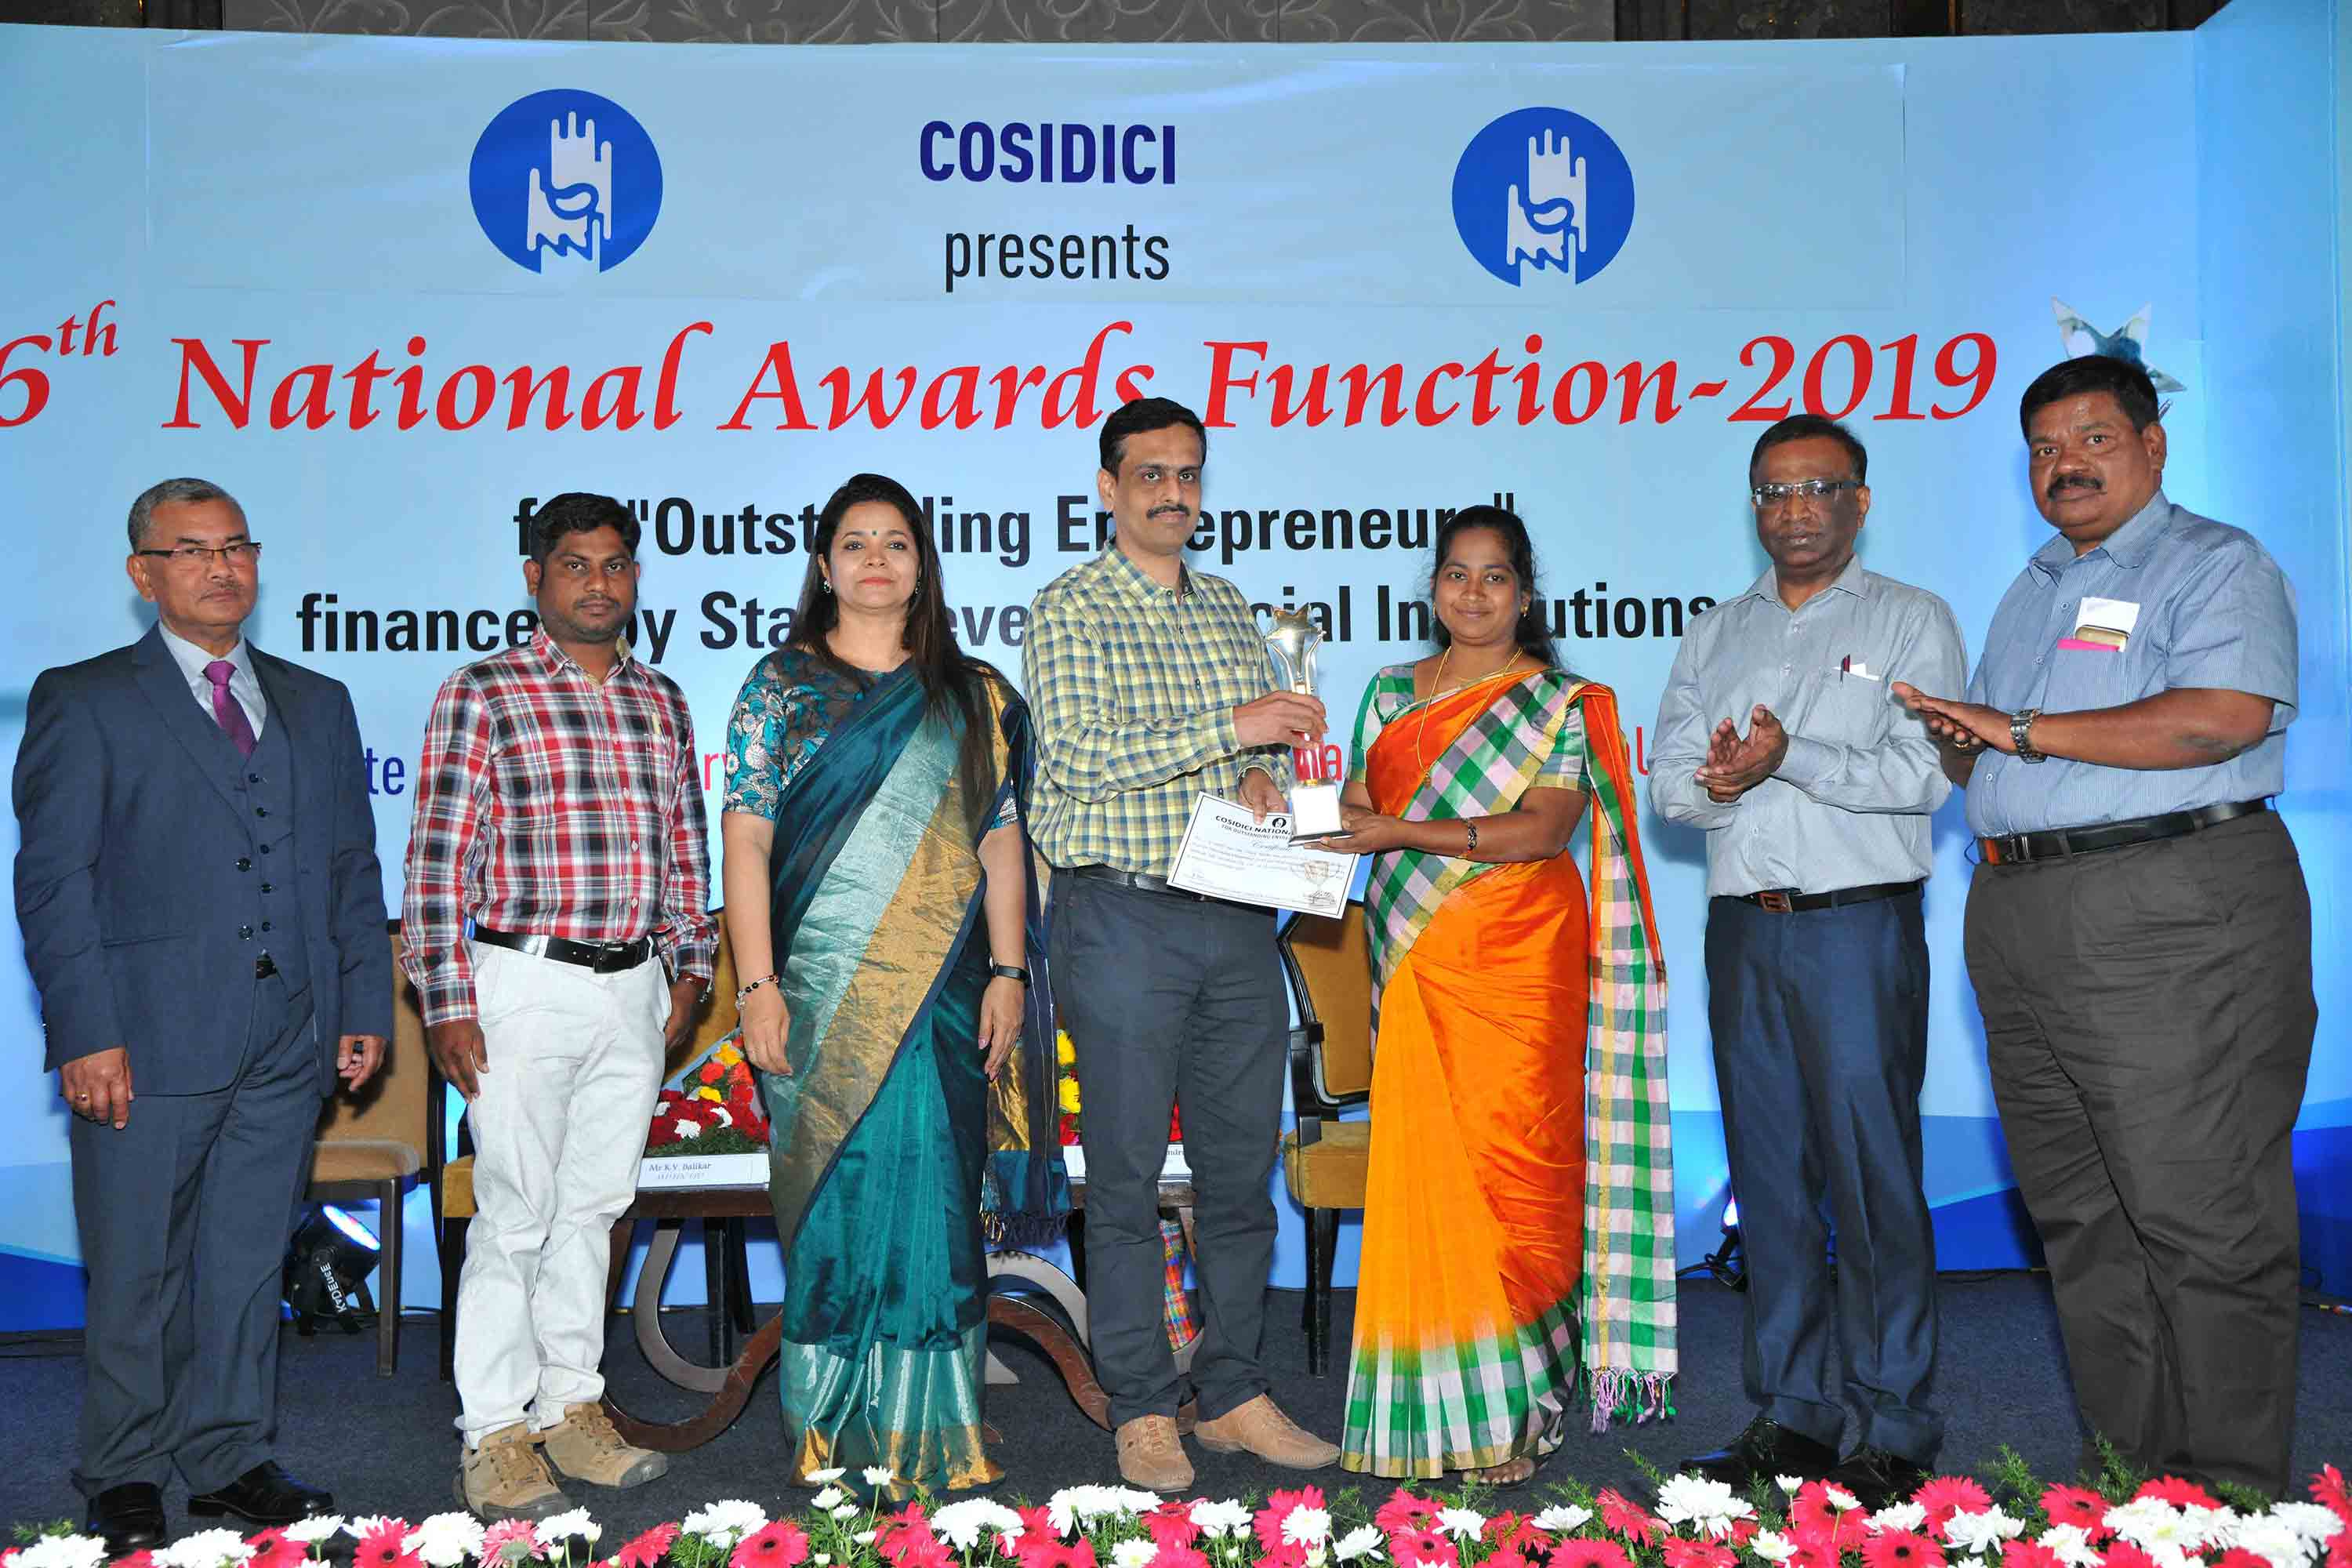 - Promoter of World Innovation Technologies, Coimbatore, receiving Best Women Entrepreneur Award from COSIDICI during its National Awards 2019 Program held at Bengaluru